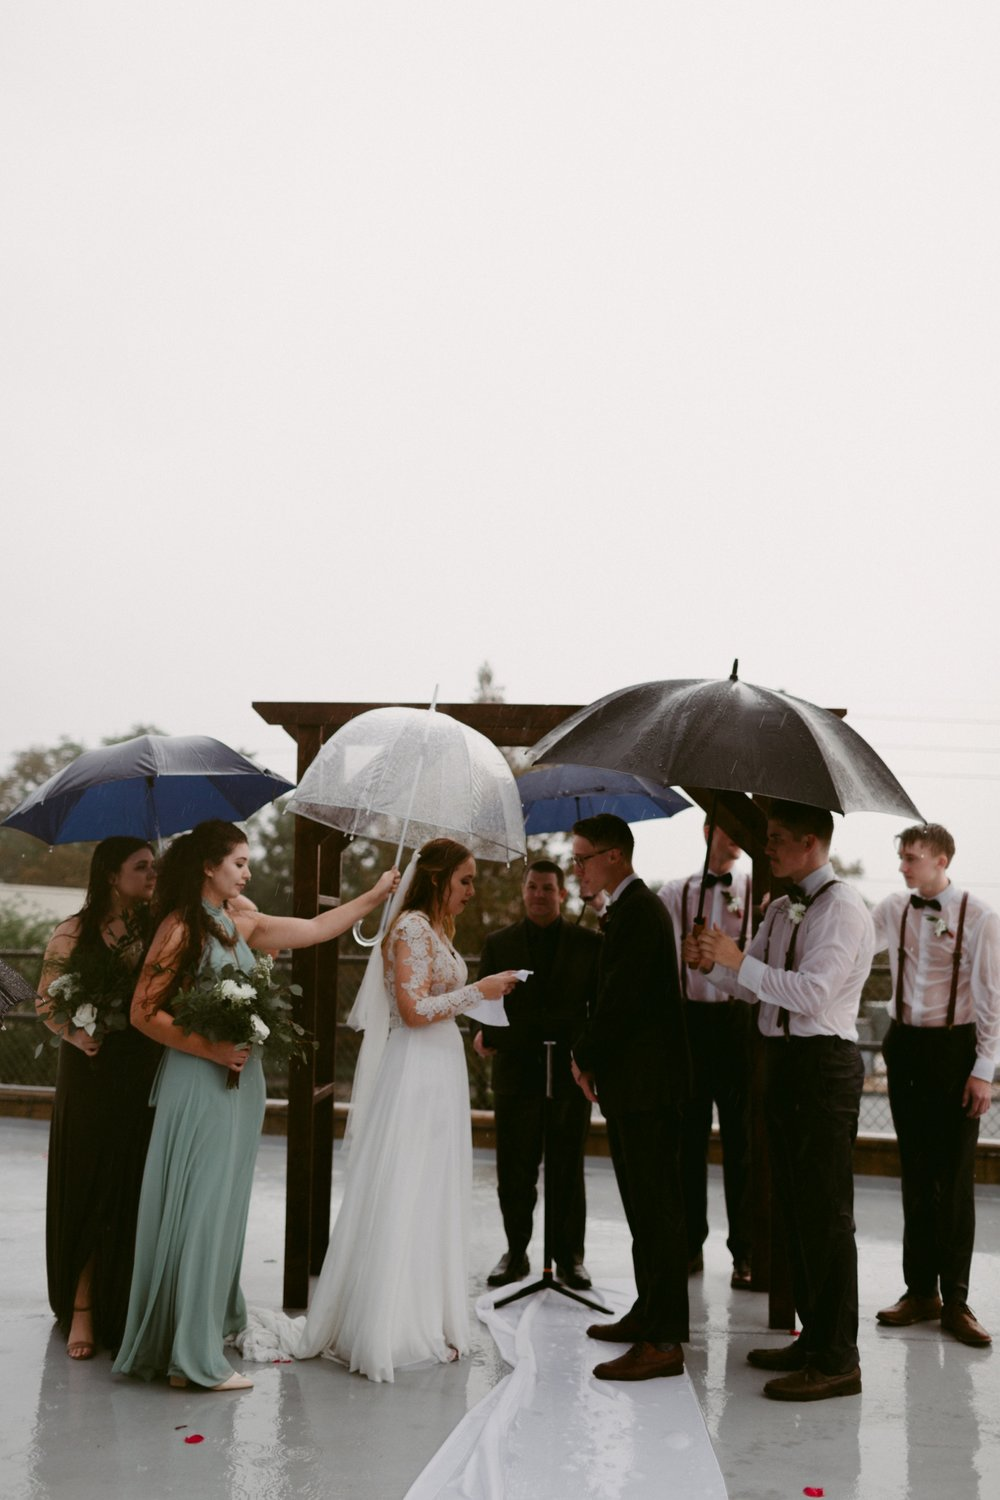 Dreamtownco.com_blog_Daniel&Kaylee_Wedding_0181.jpg